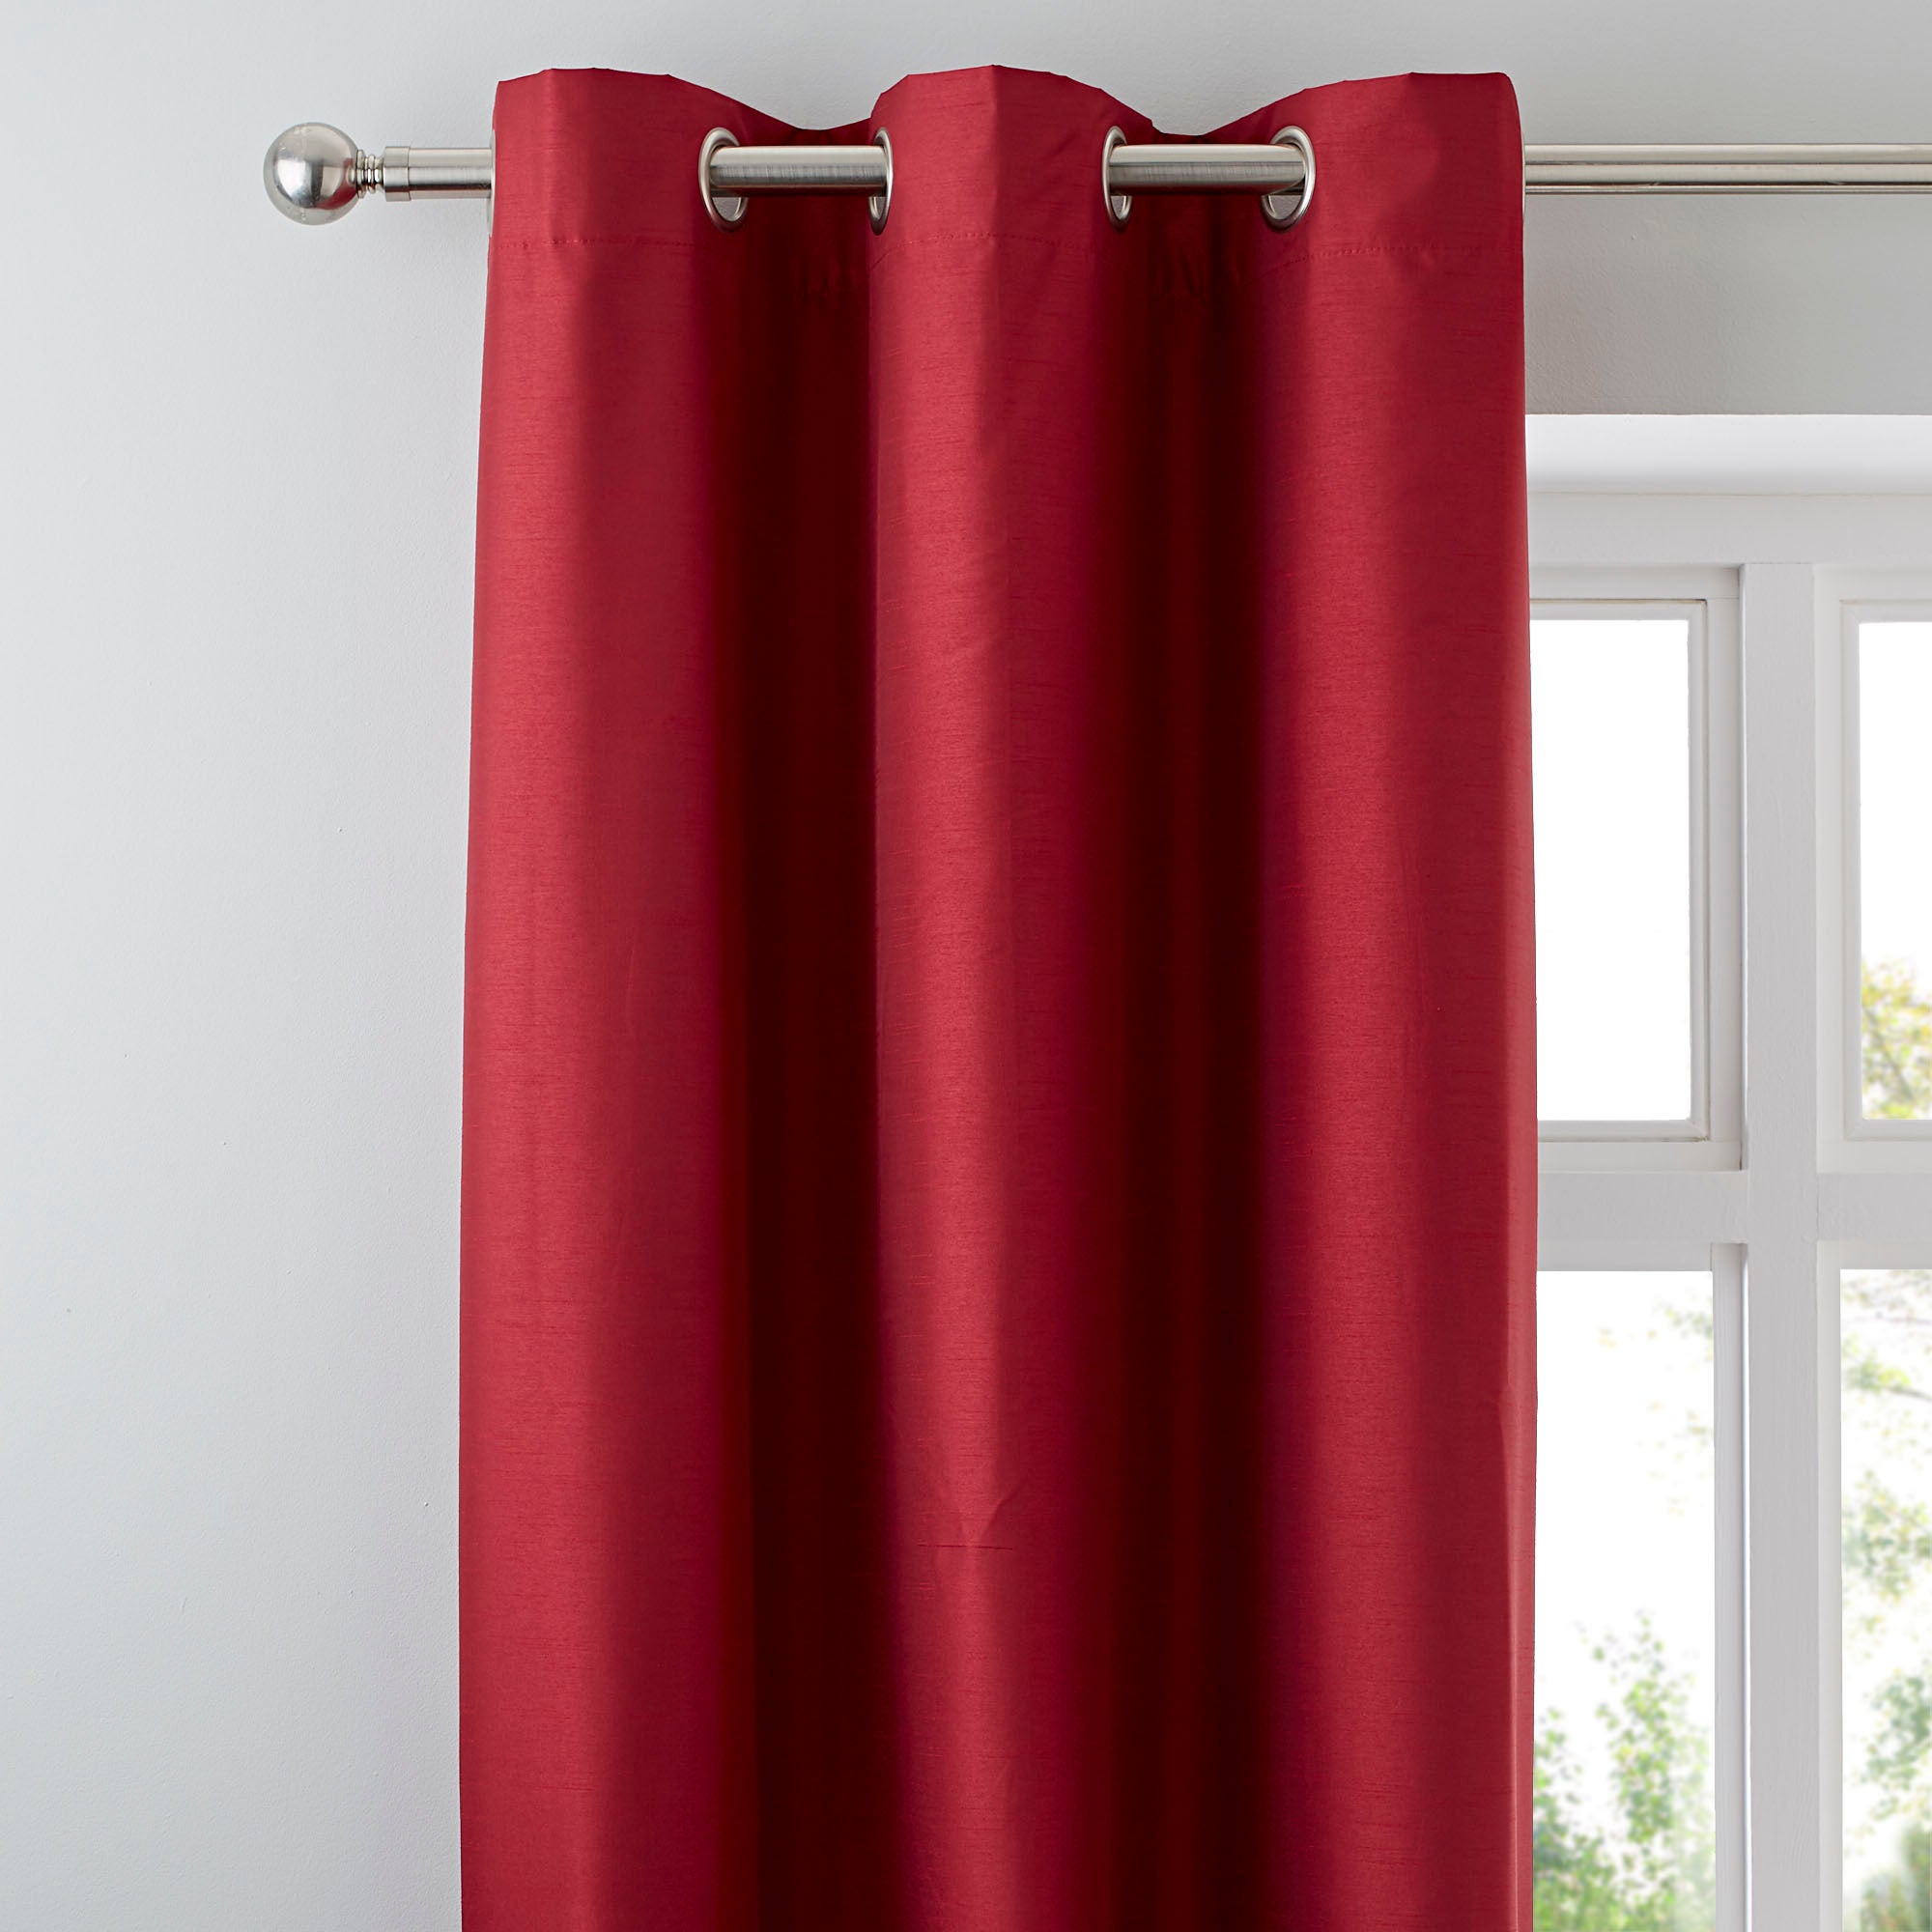 Red Nova Blackout Lined Eyelet Curtains